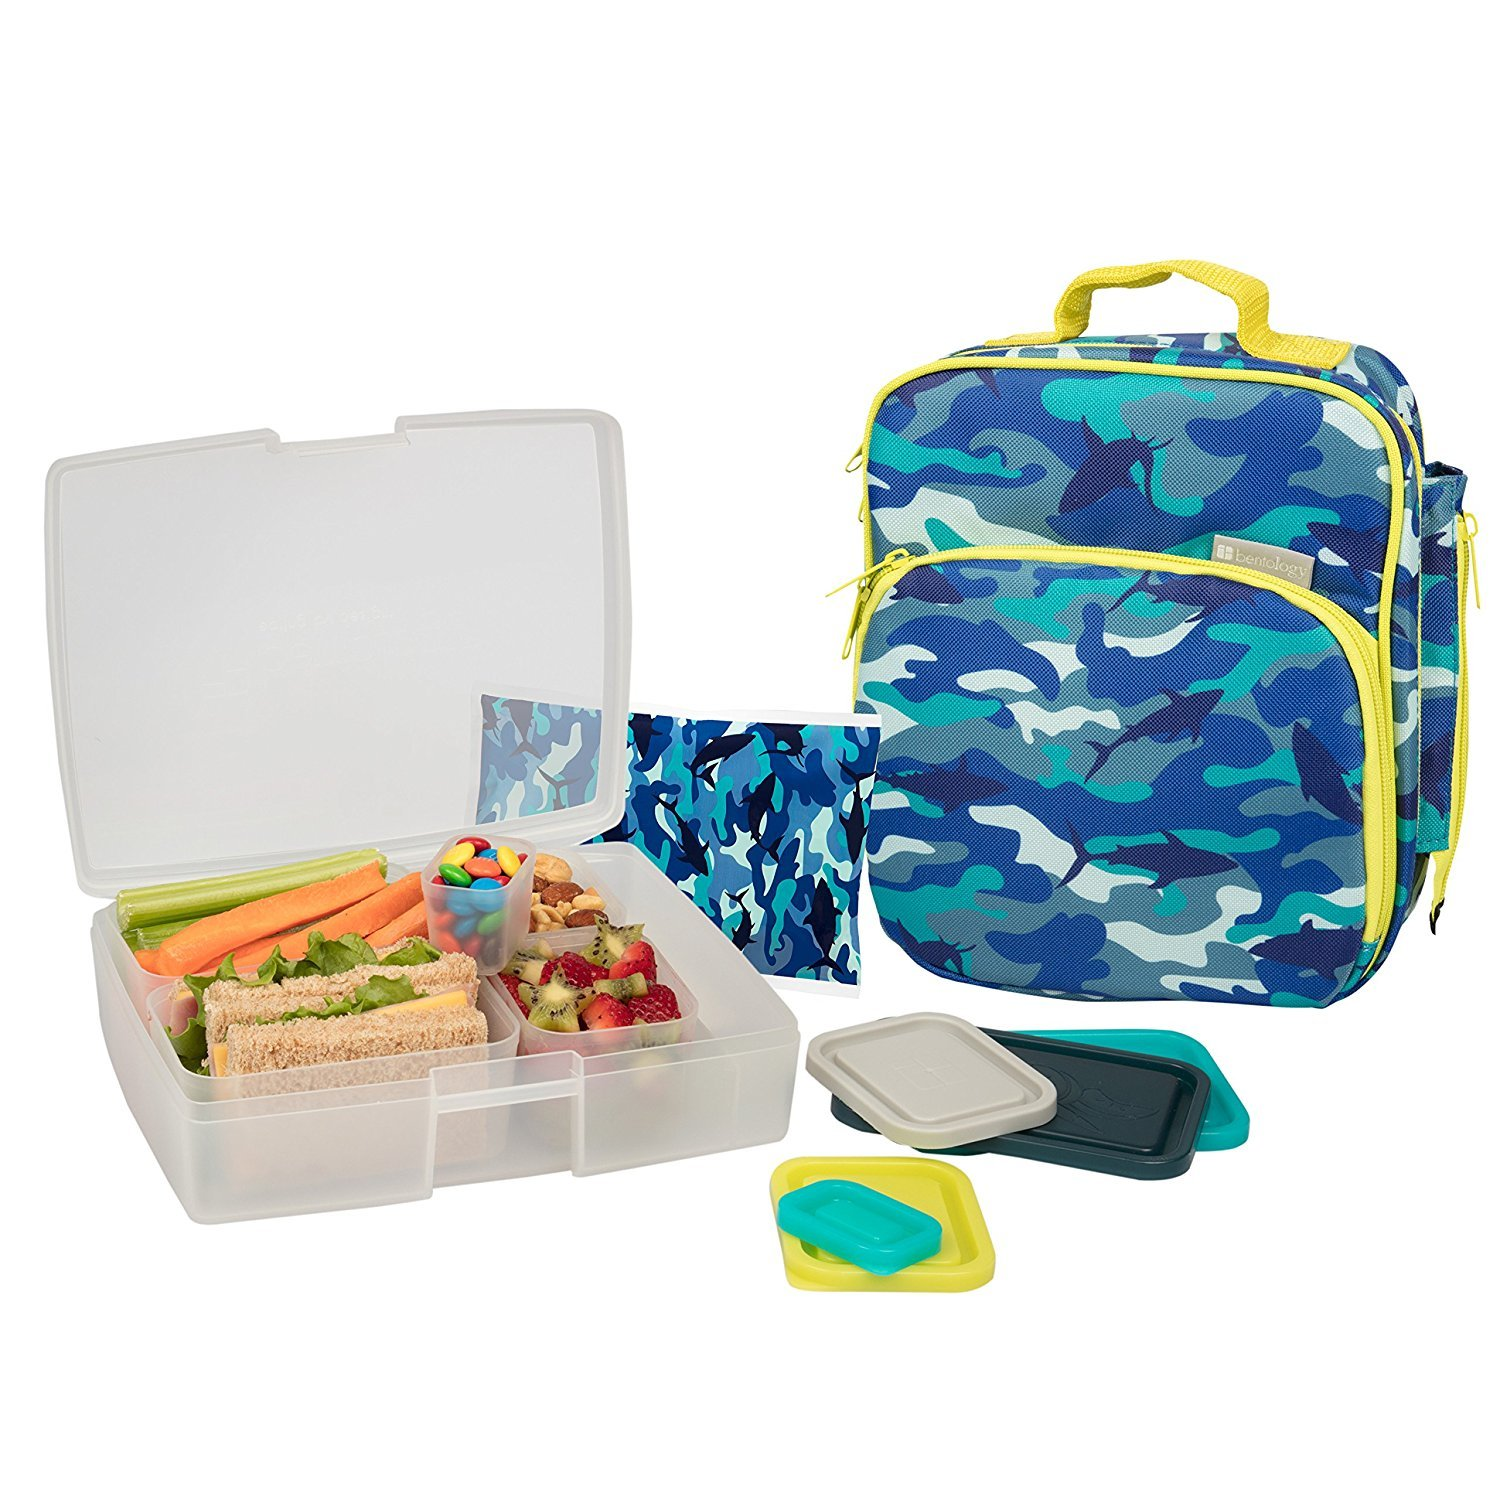 Bentology Lunch Bag and Box Set - Includes Insulated Bag with Handle, Bento Box, 5 Containers and Ice Pack (Camo)